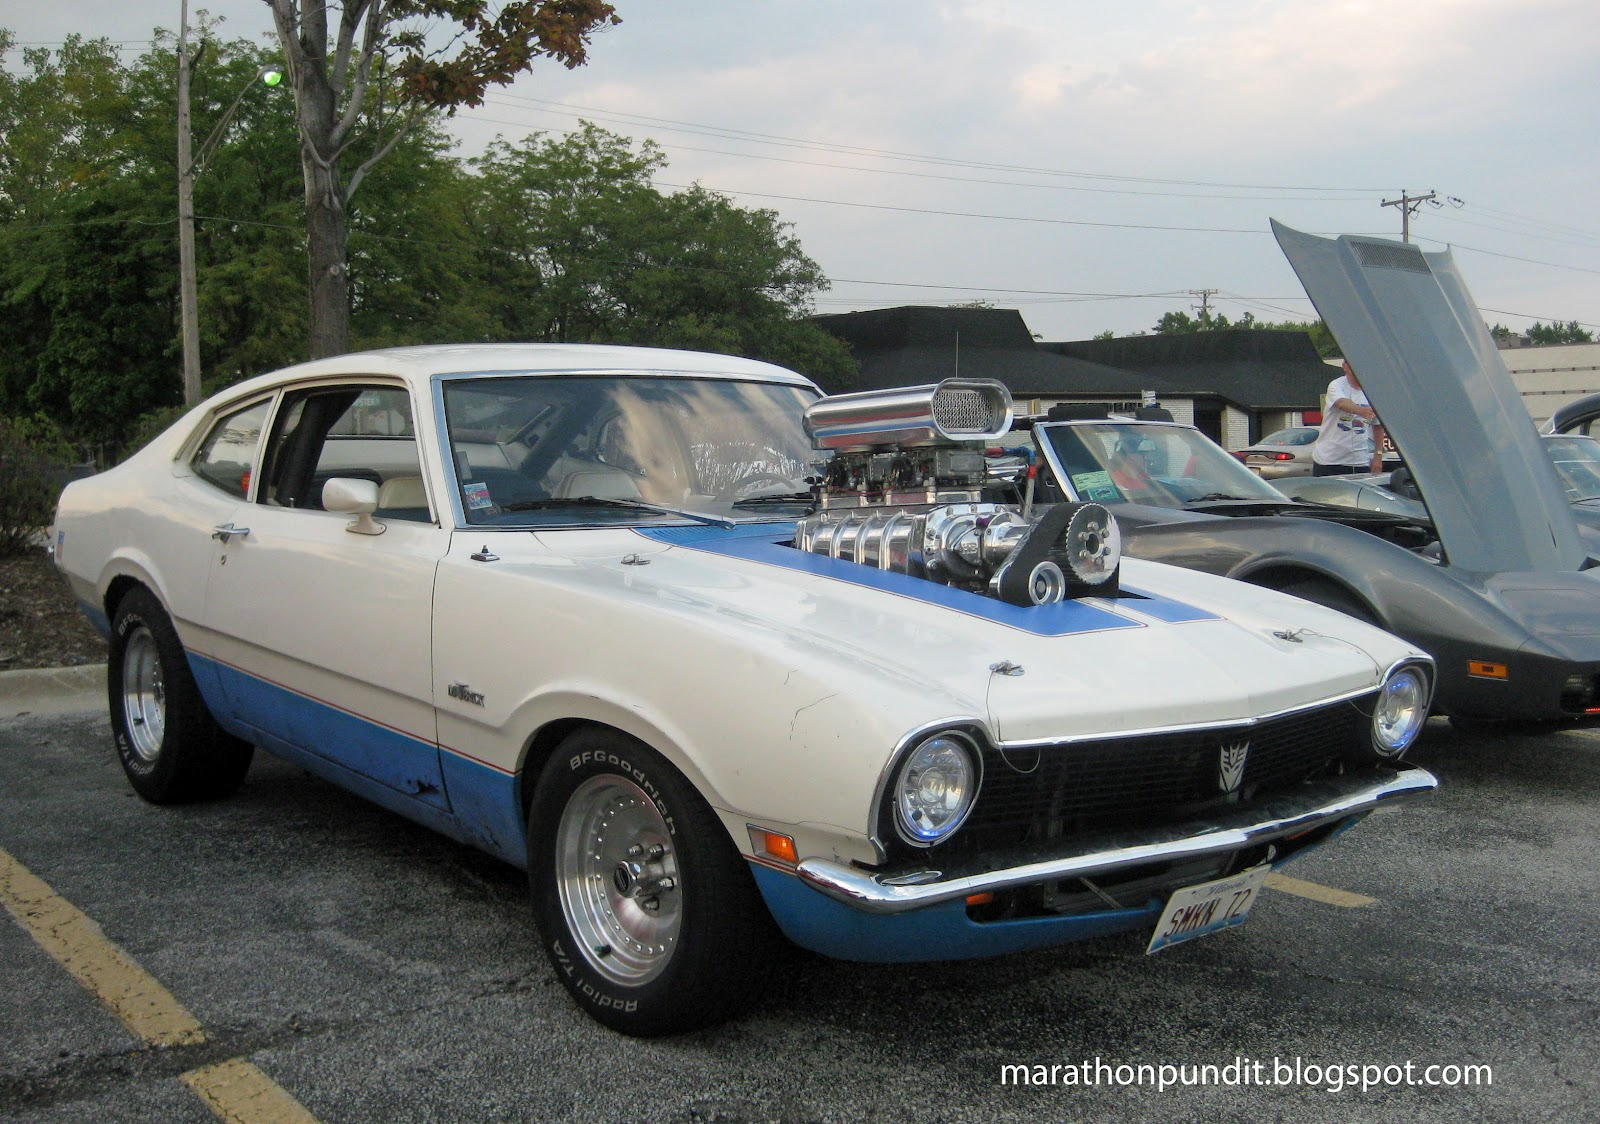 Marathon Pundit Photos Morton Grove Classic Car Show 8